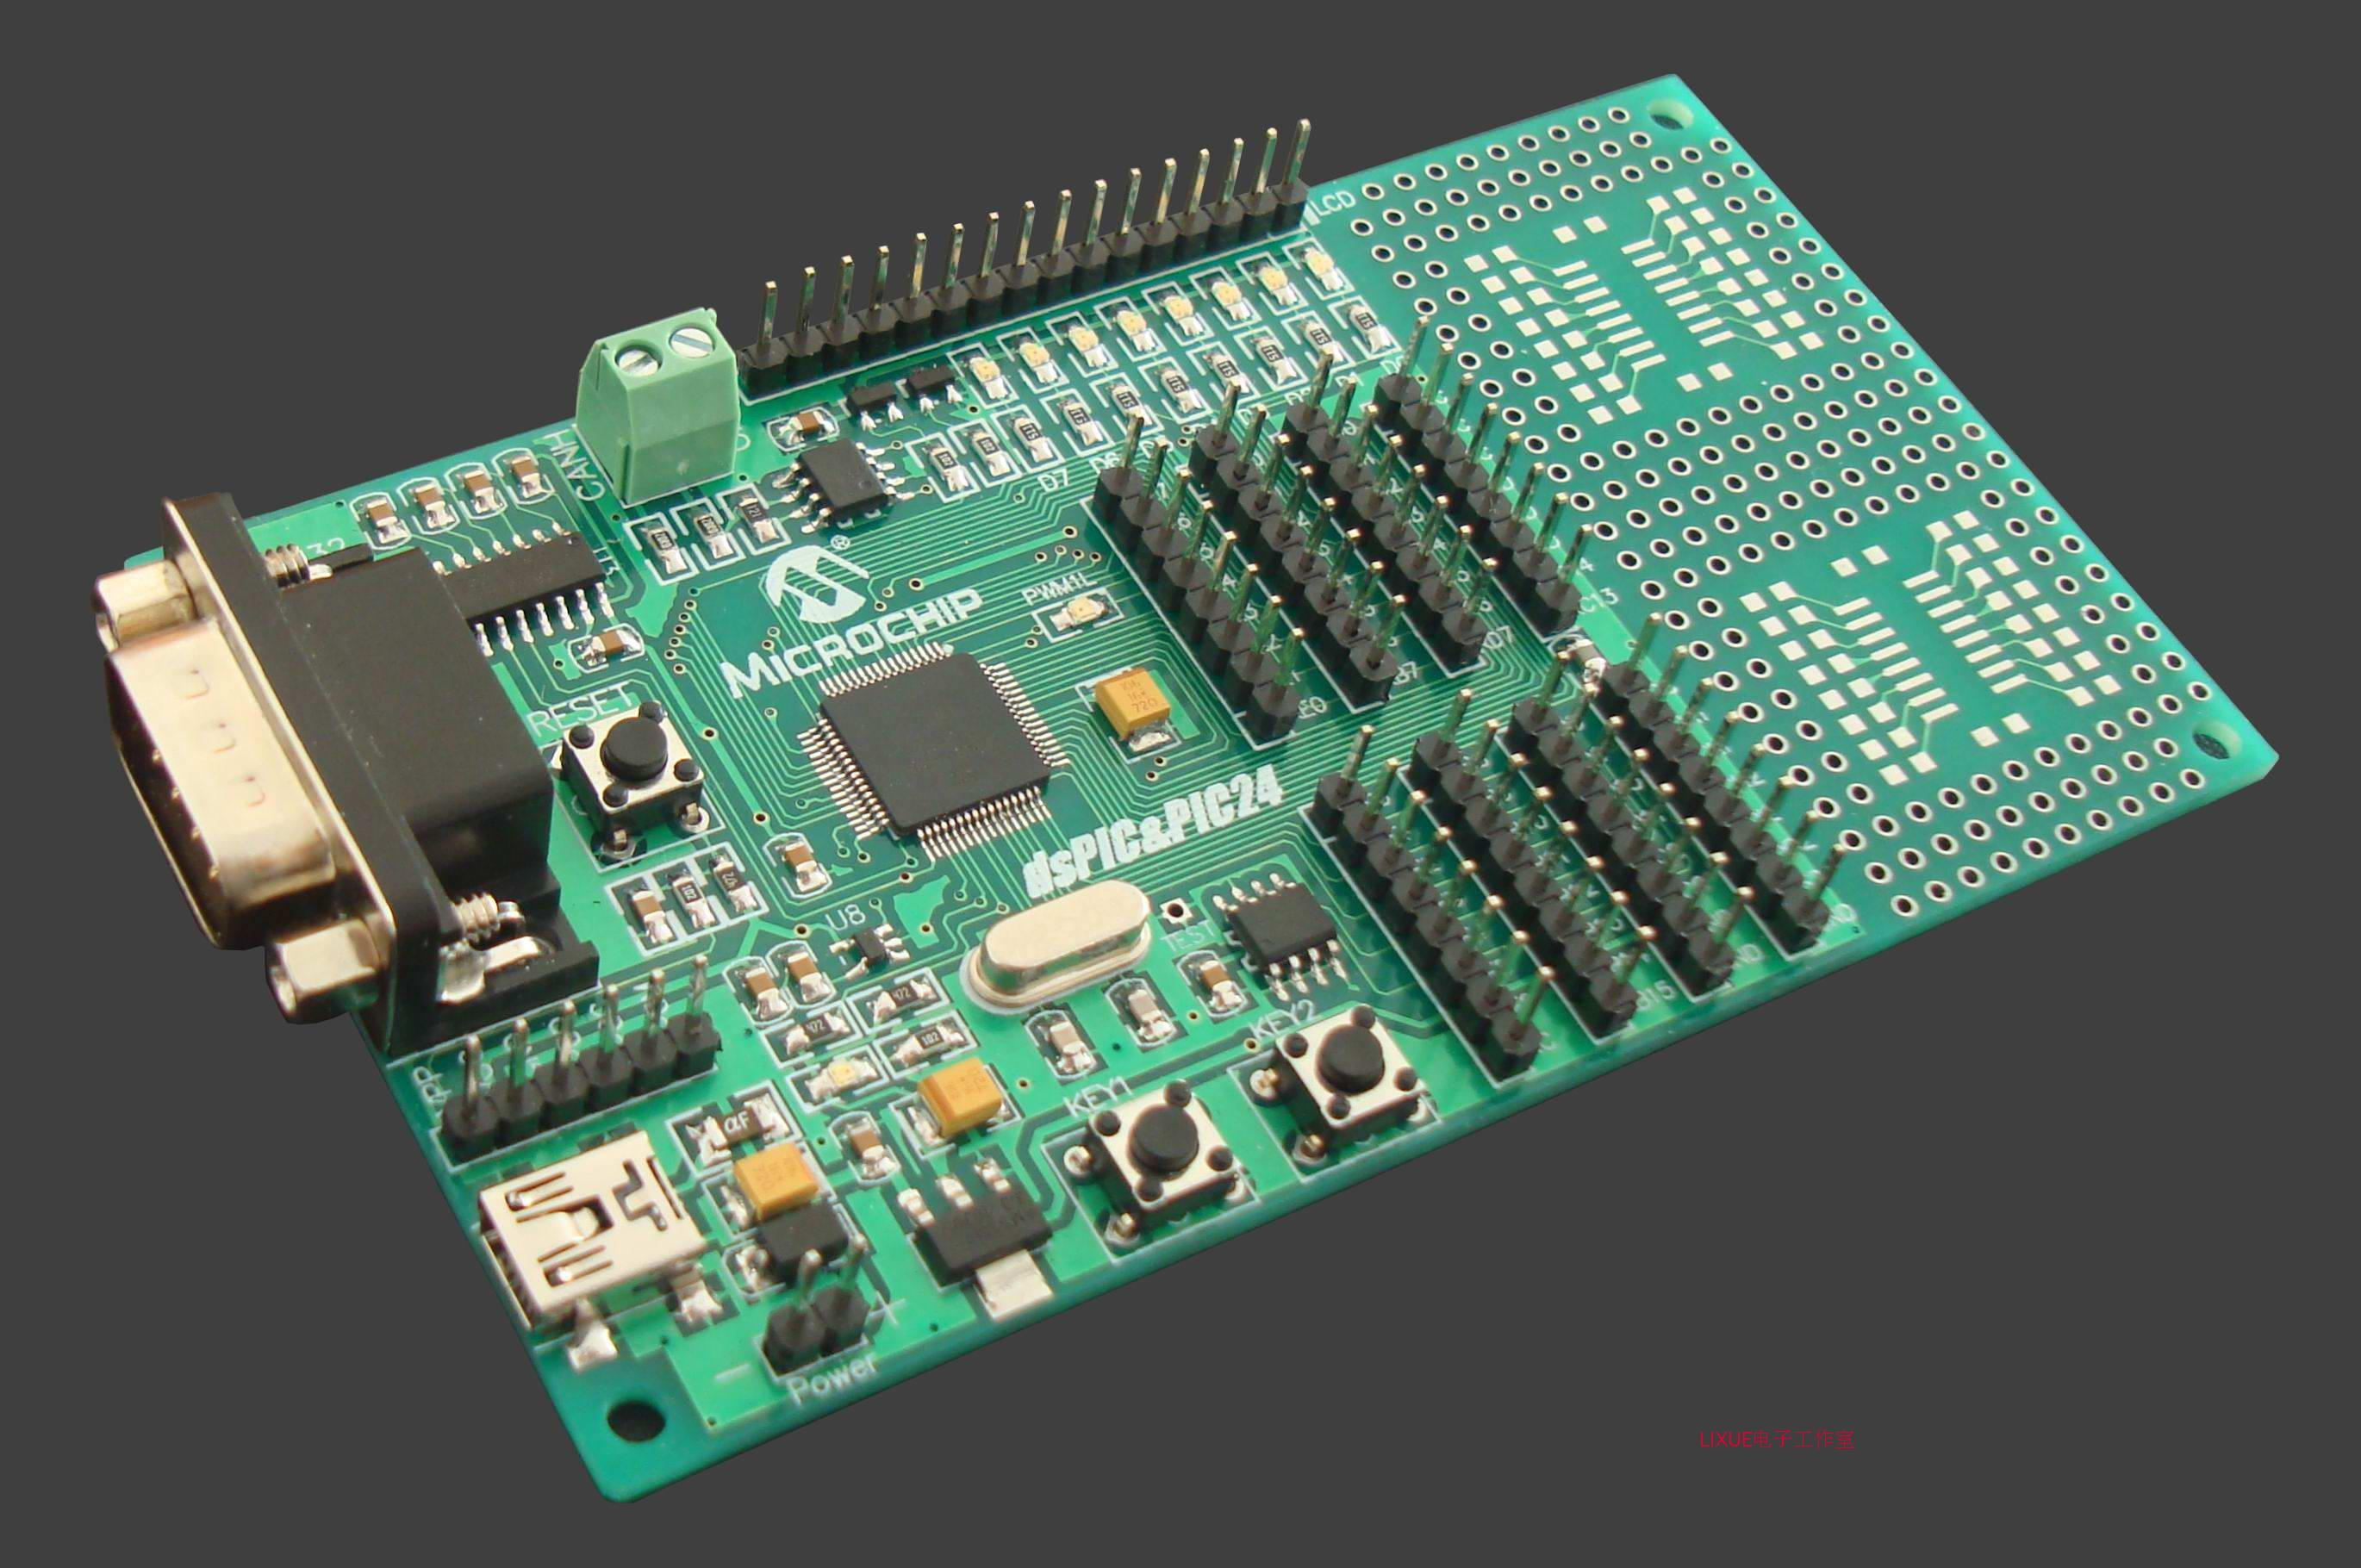 DsPIC33FJ128MC706 microcontroller, CAN motor, PIC learning board, development board, experimental board stm32 development board stm32f103 learning machine embedded microcontroller development board design course